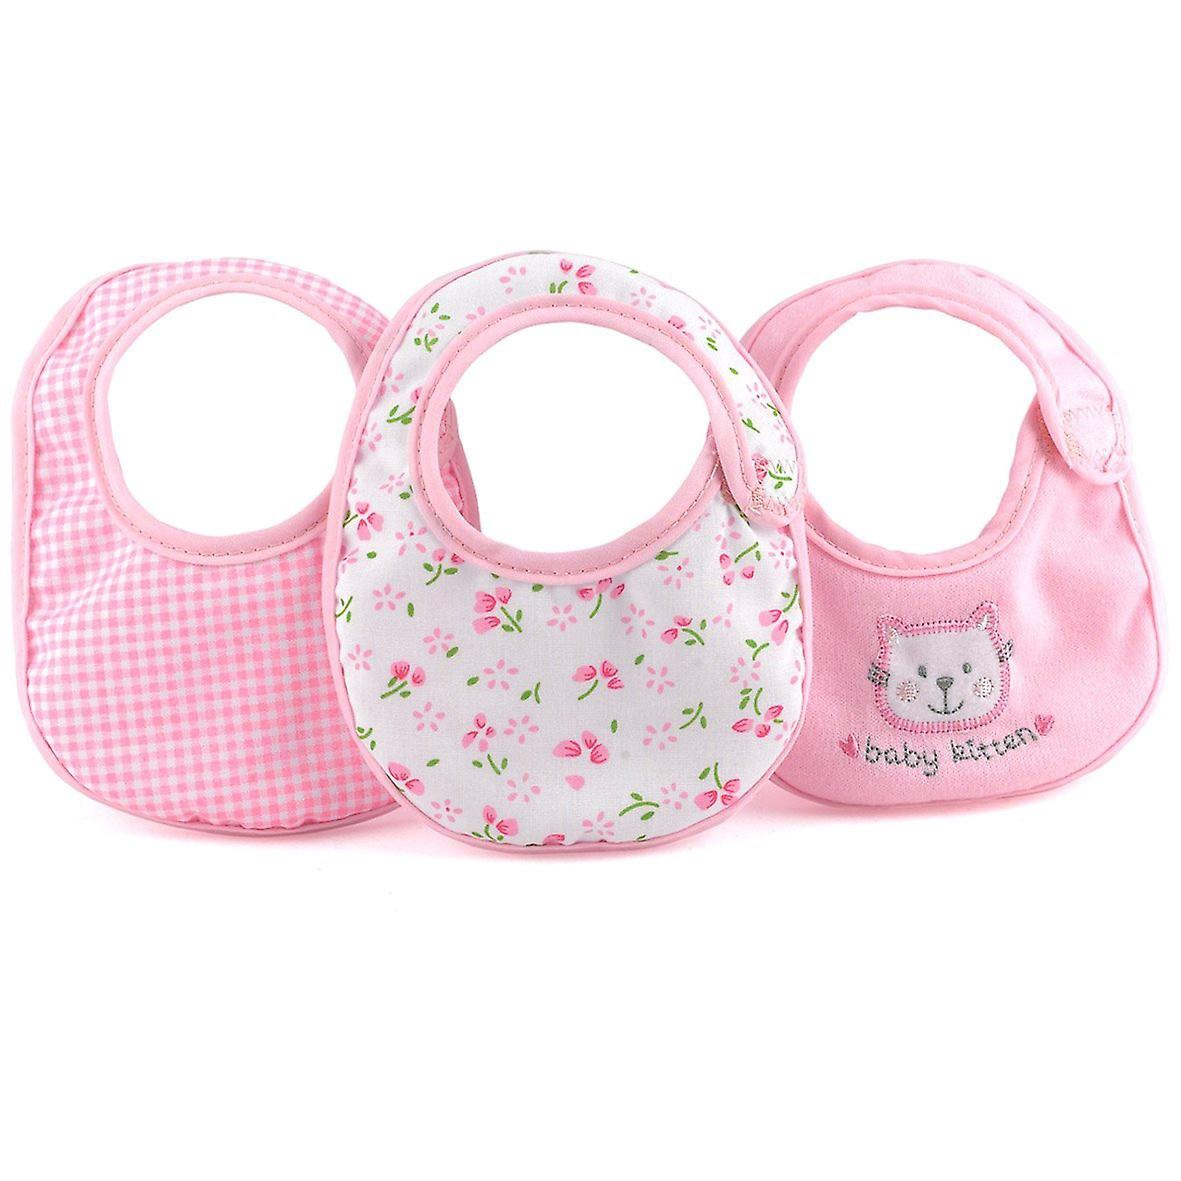 DOLL'S WORLD BABY BIBS